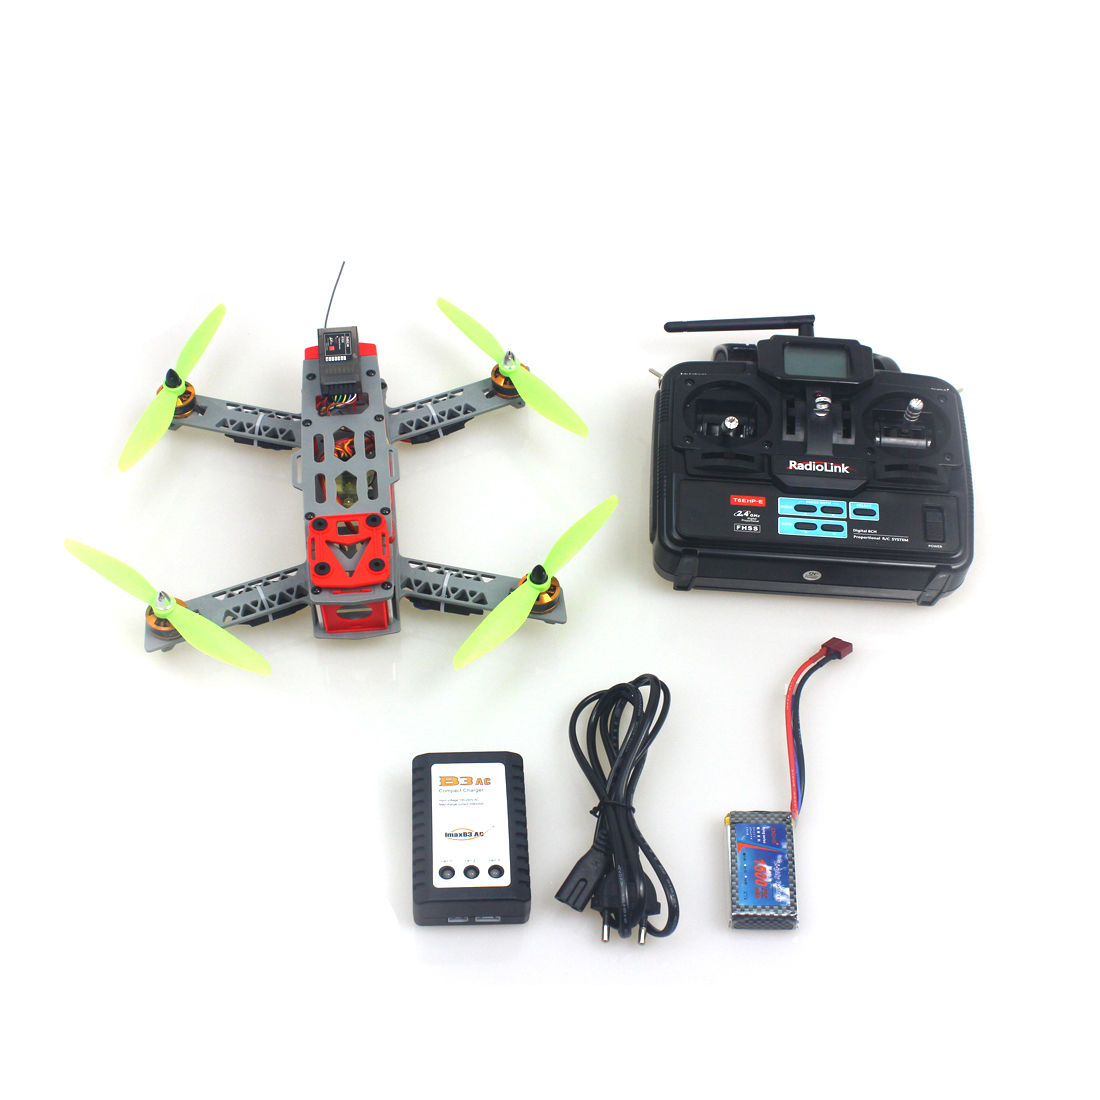 F16051-A JMT FPV 260 Frame Small Quadcopter with Motor ESC Flight Control Opensource 6Ch TX & RX Battery RTF Drone FS jmt diy fpv flight control set openpiolot cc3d revolution flight controller oplink mini transceiver tx rx m8n gps compass